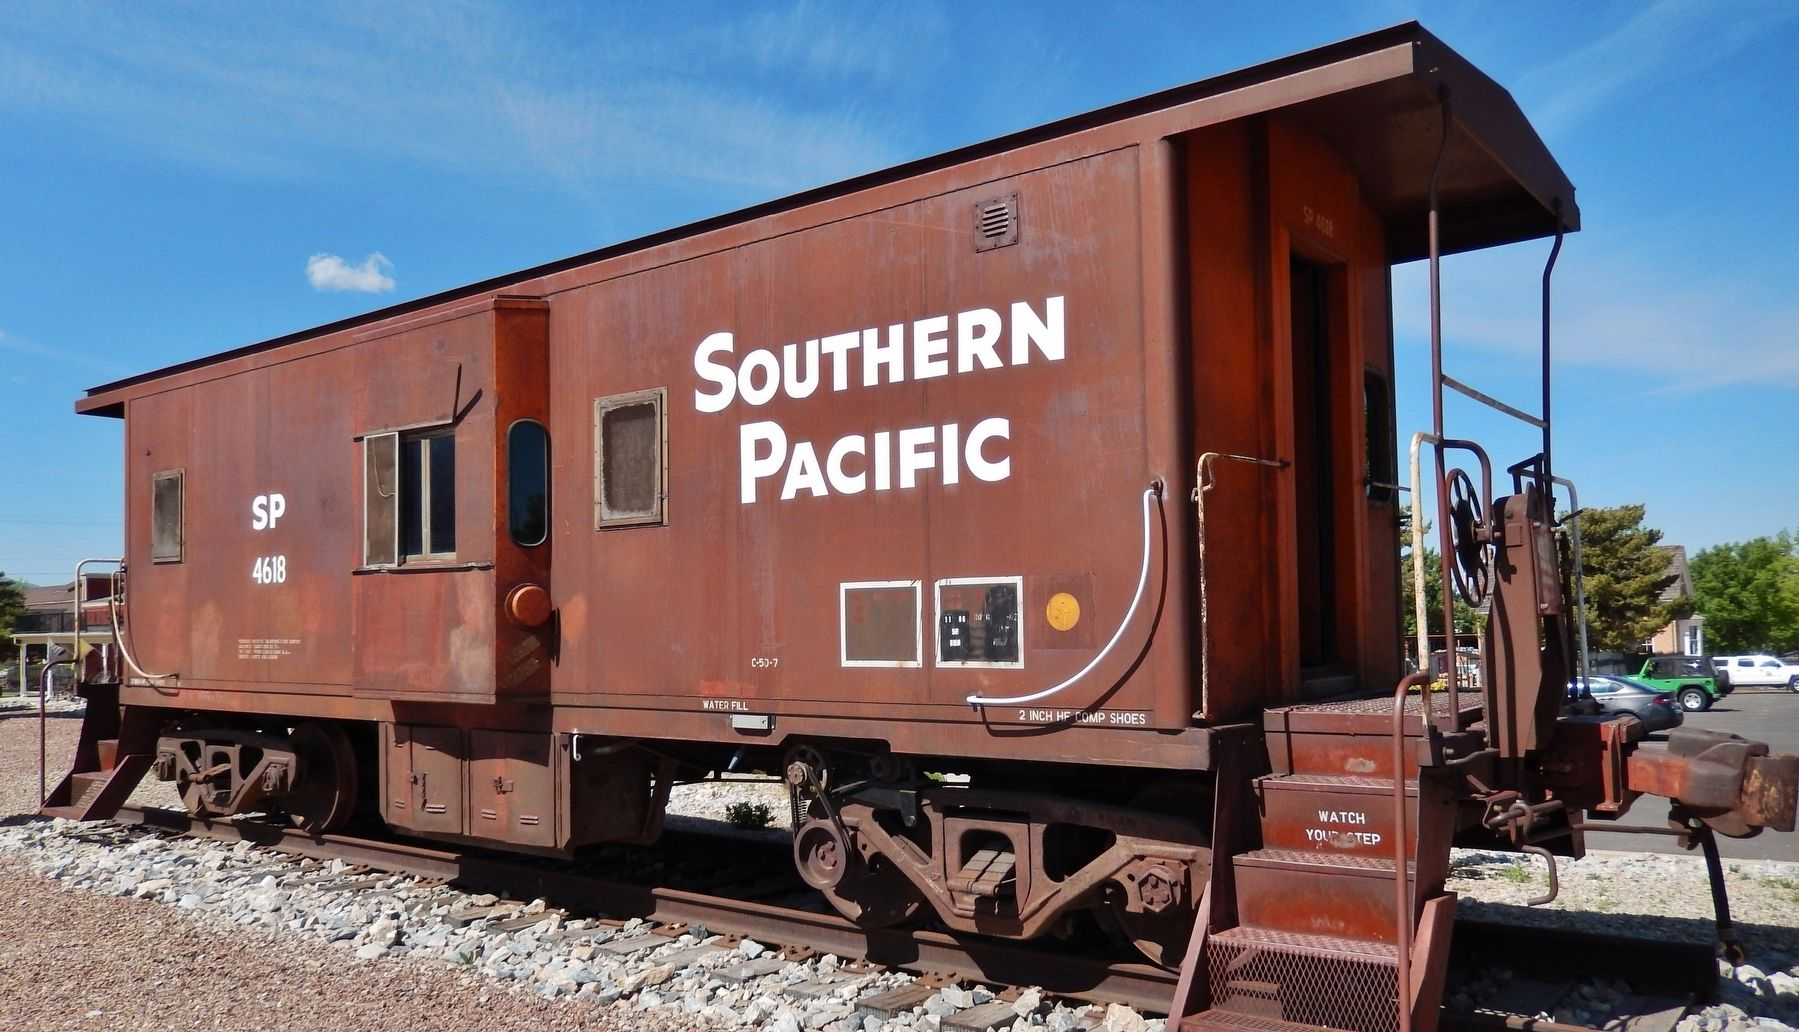 Southern Pacific Caboose #4618 image. Click for full size.